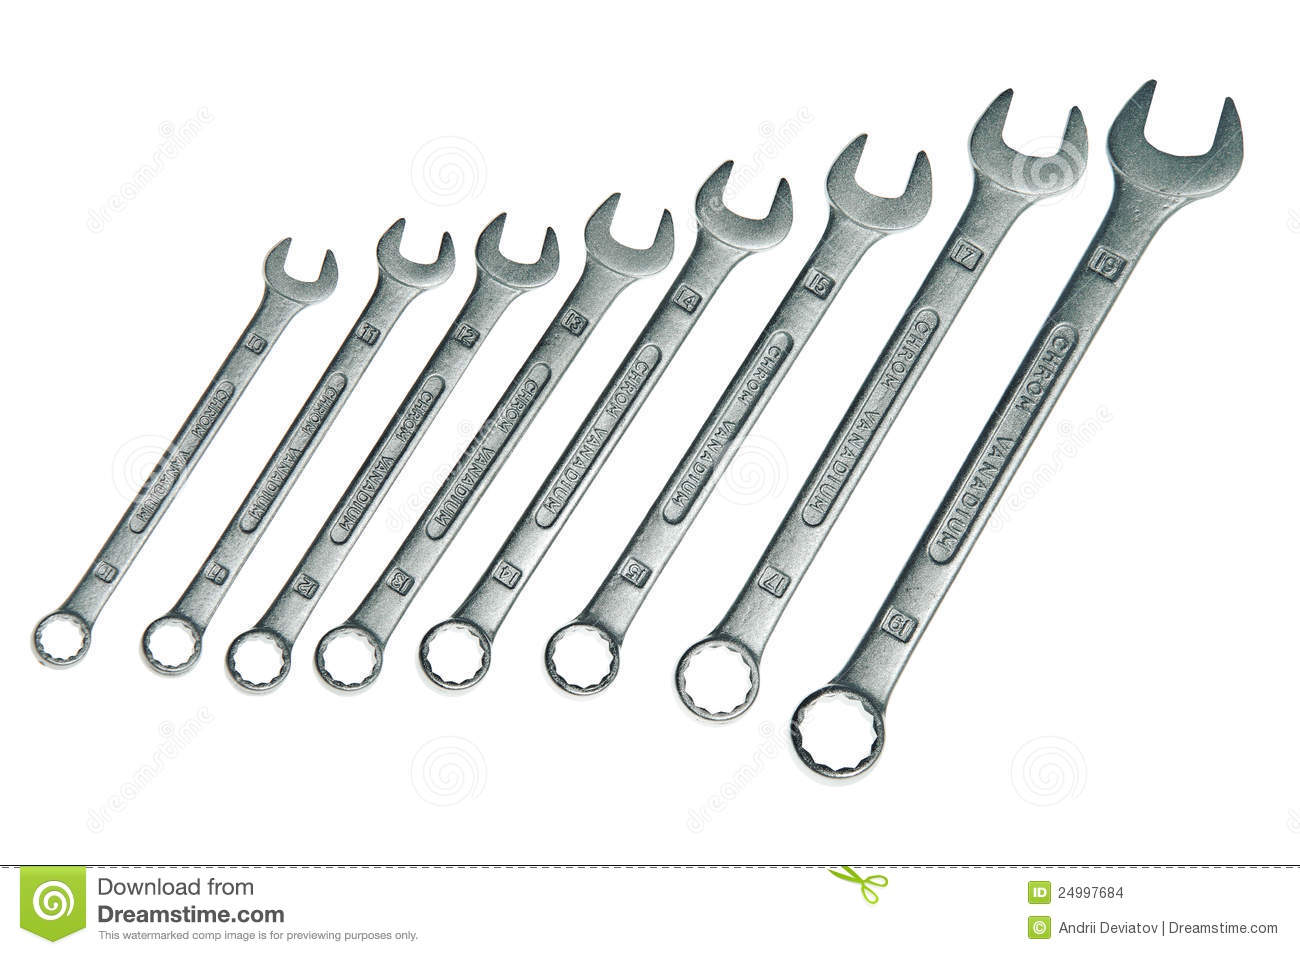 Eight Different Sizes Chrome Vanadium Wrenches Stock Images.